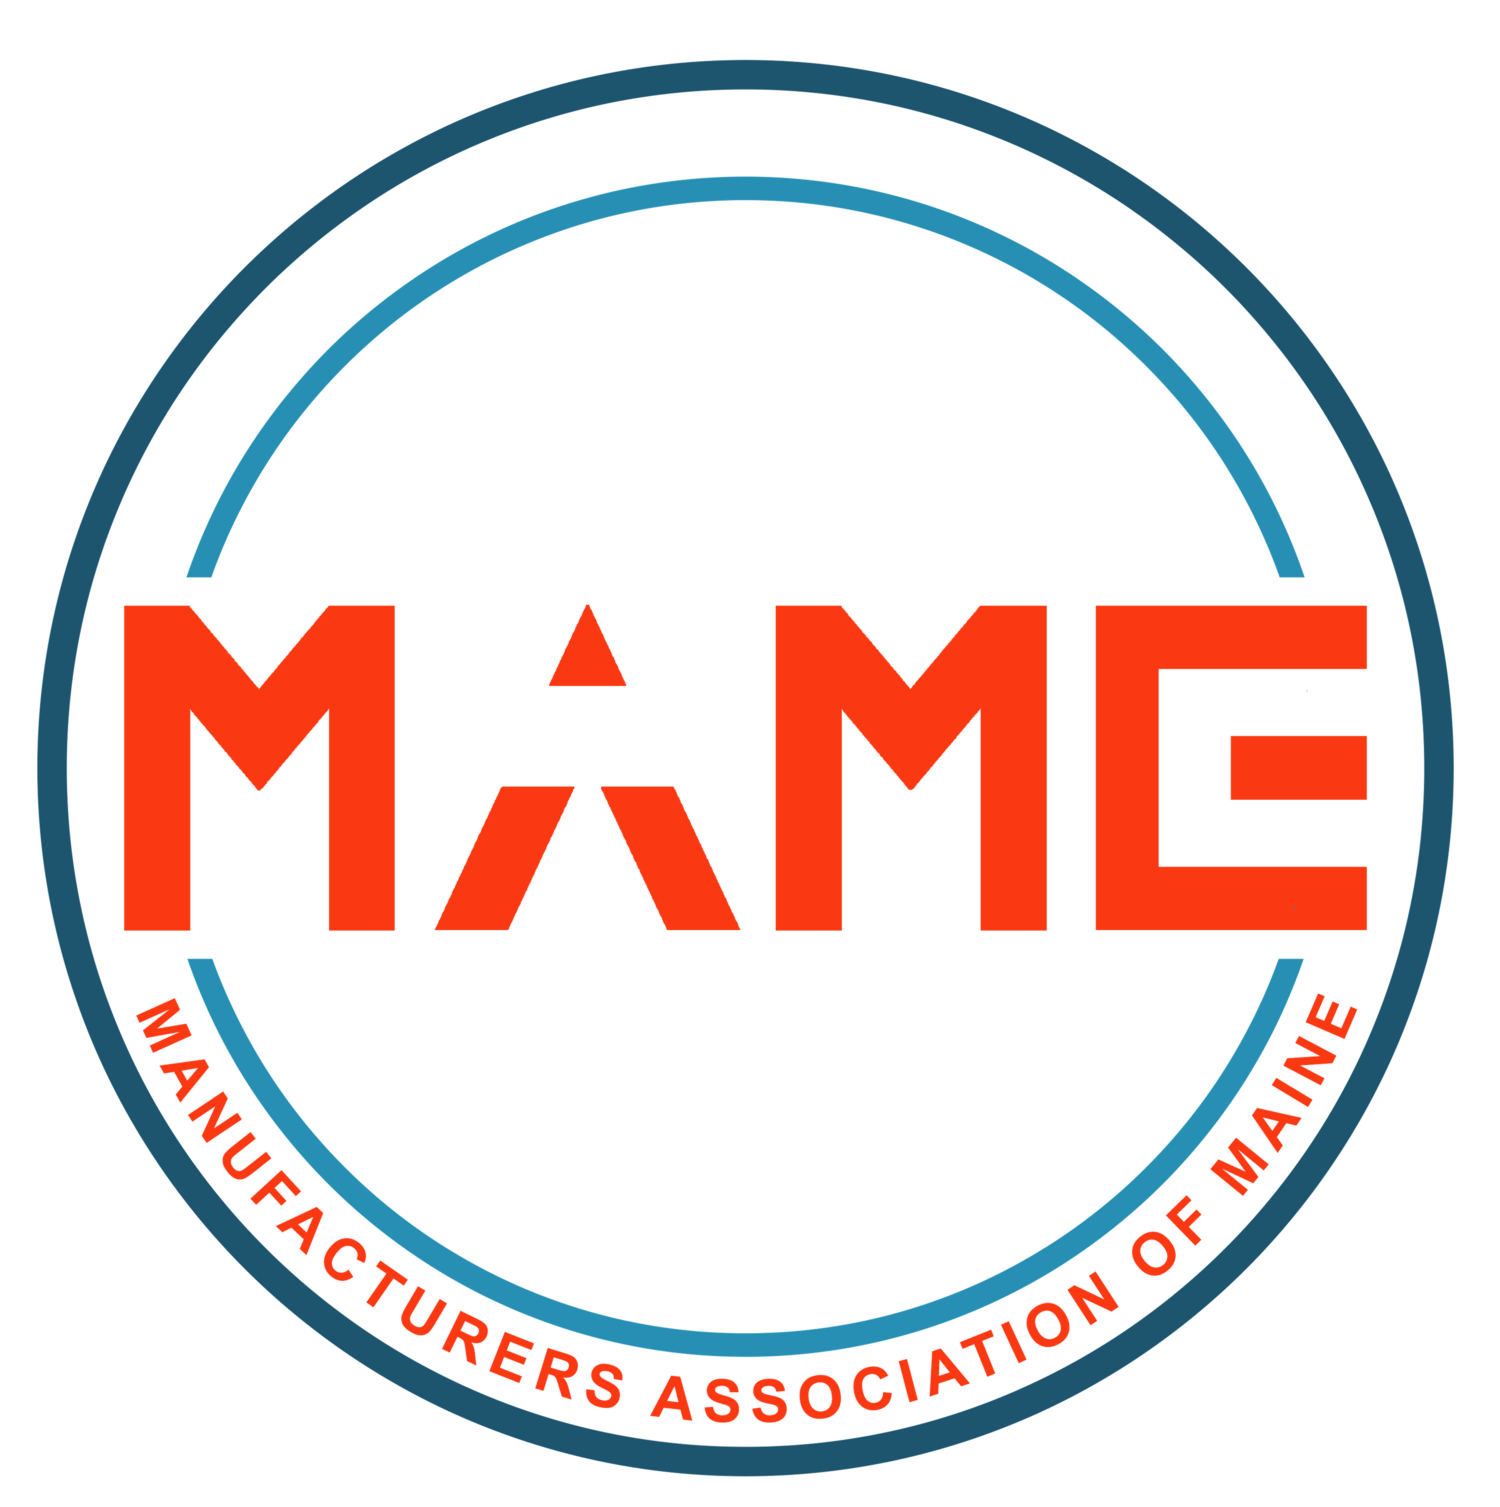 Manufacturers Association of Maine